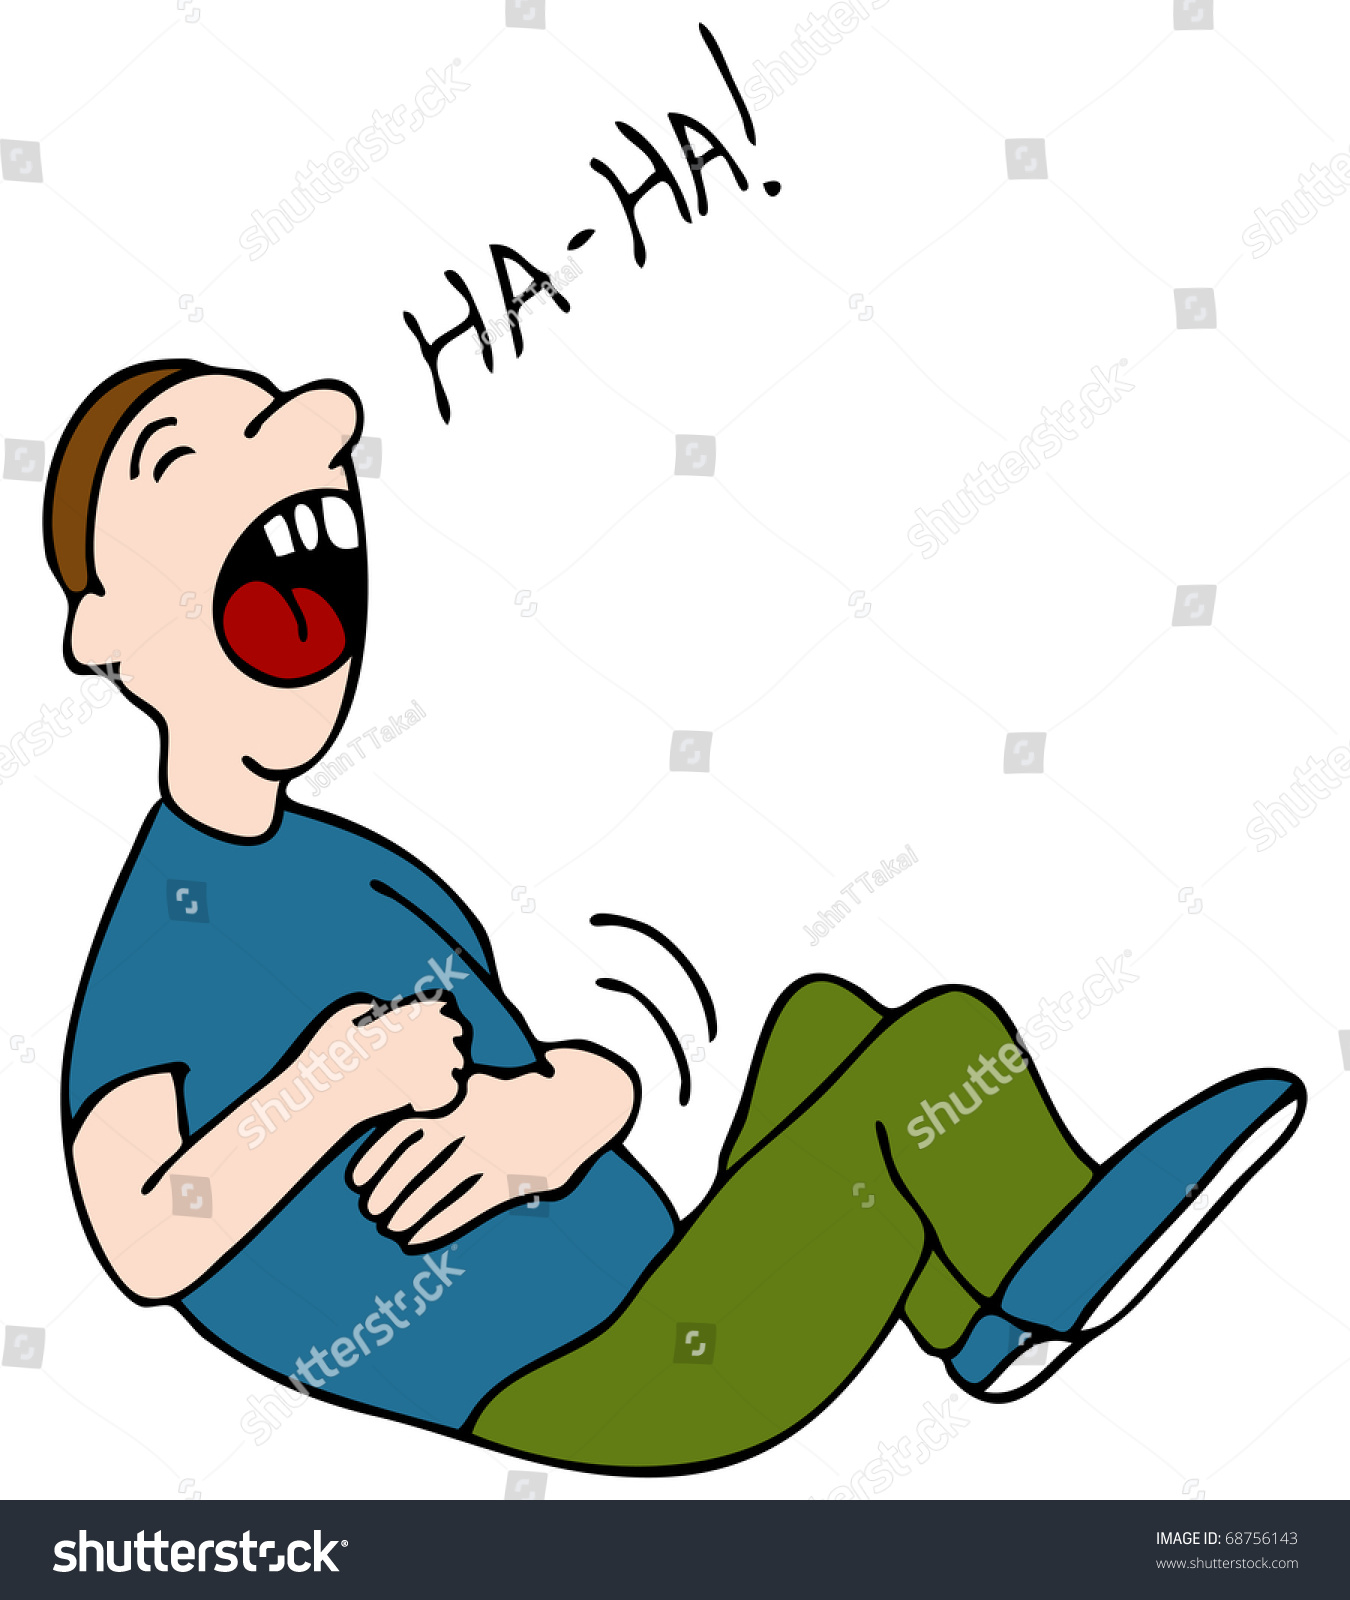 Cartoon Characters Laughing Hysterically : Image laugh hysterically while hold his stock illustration